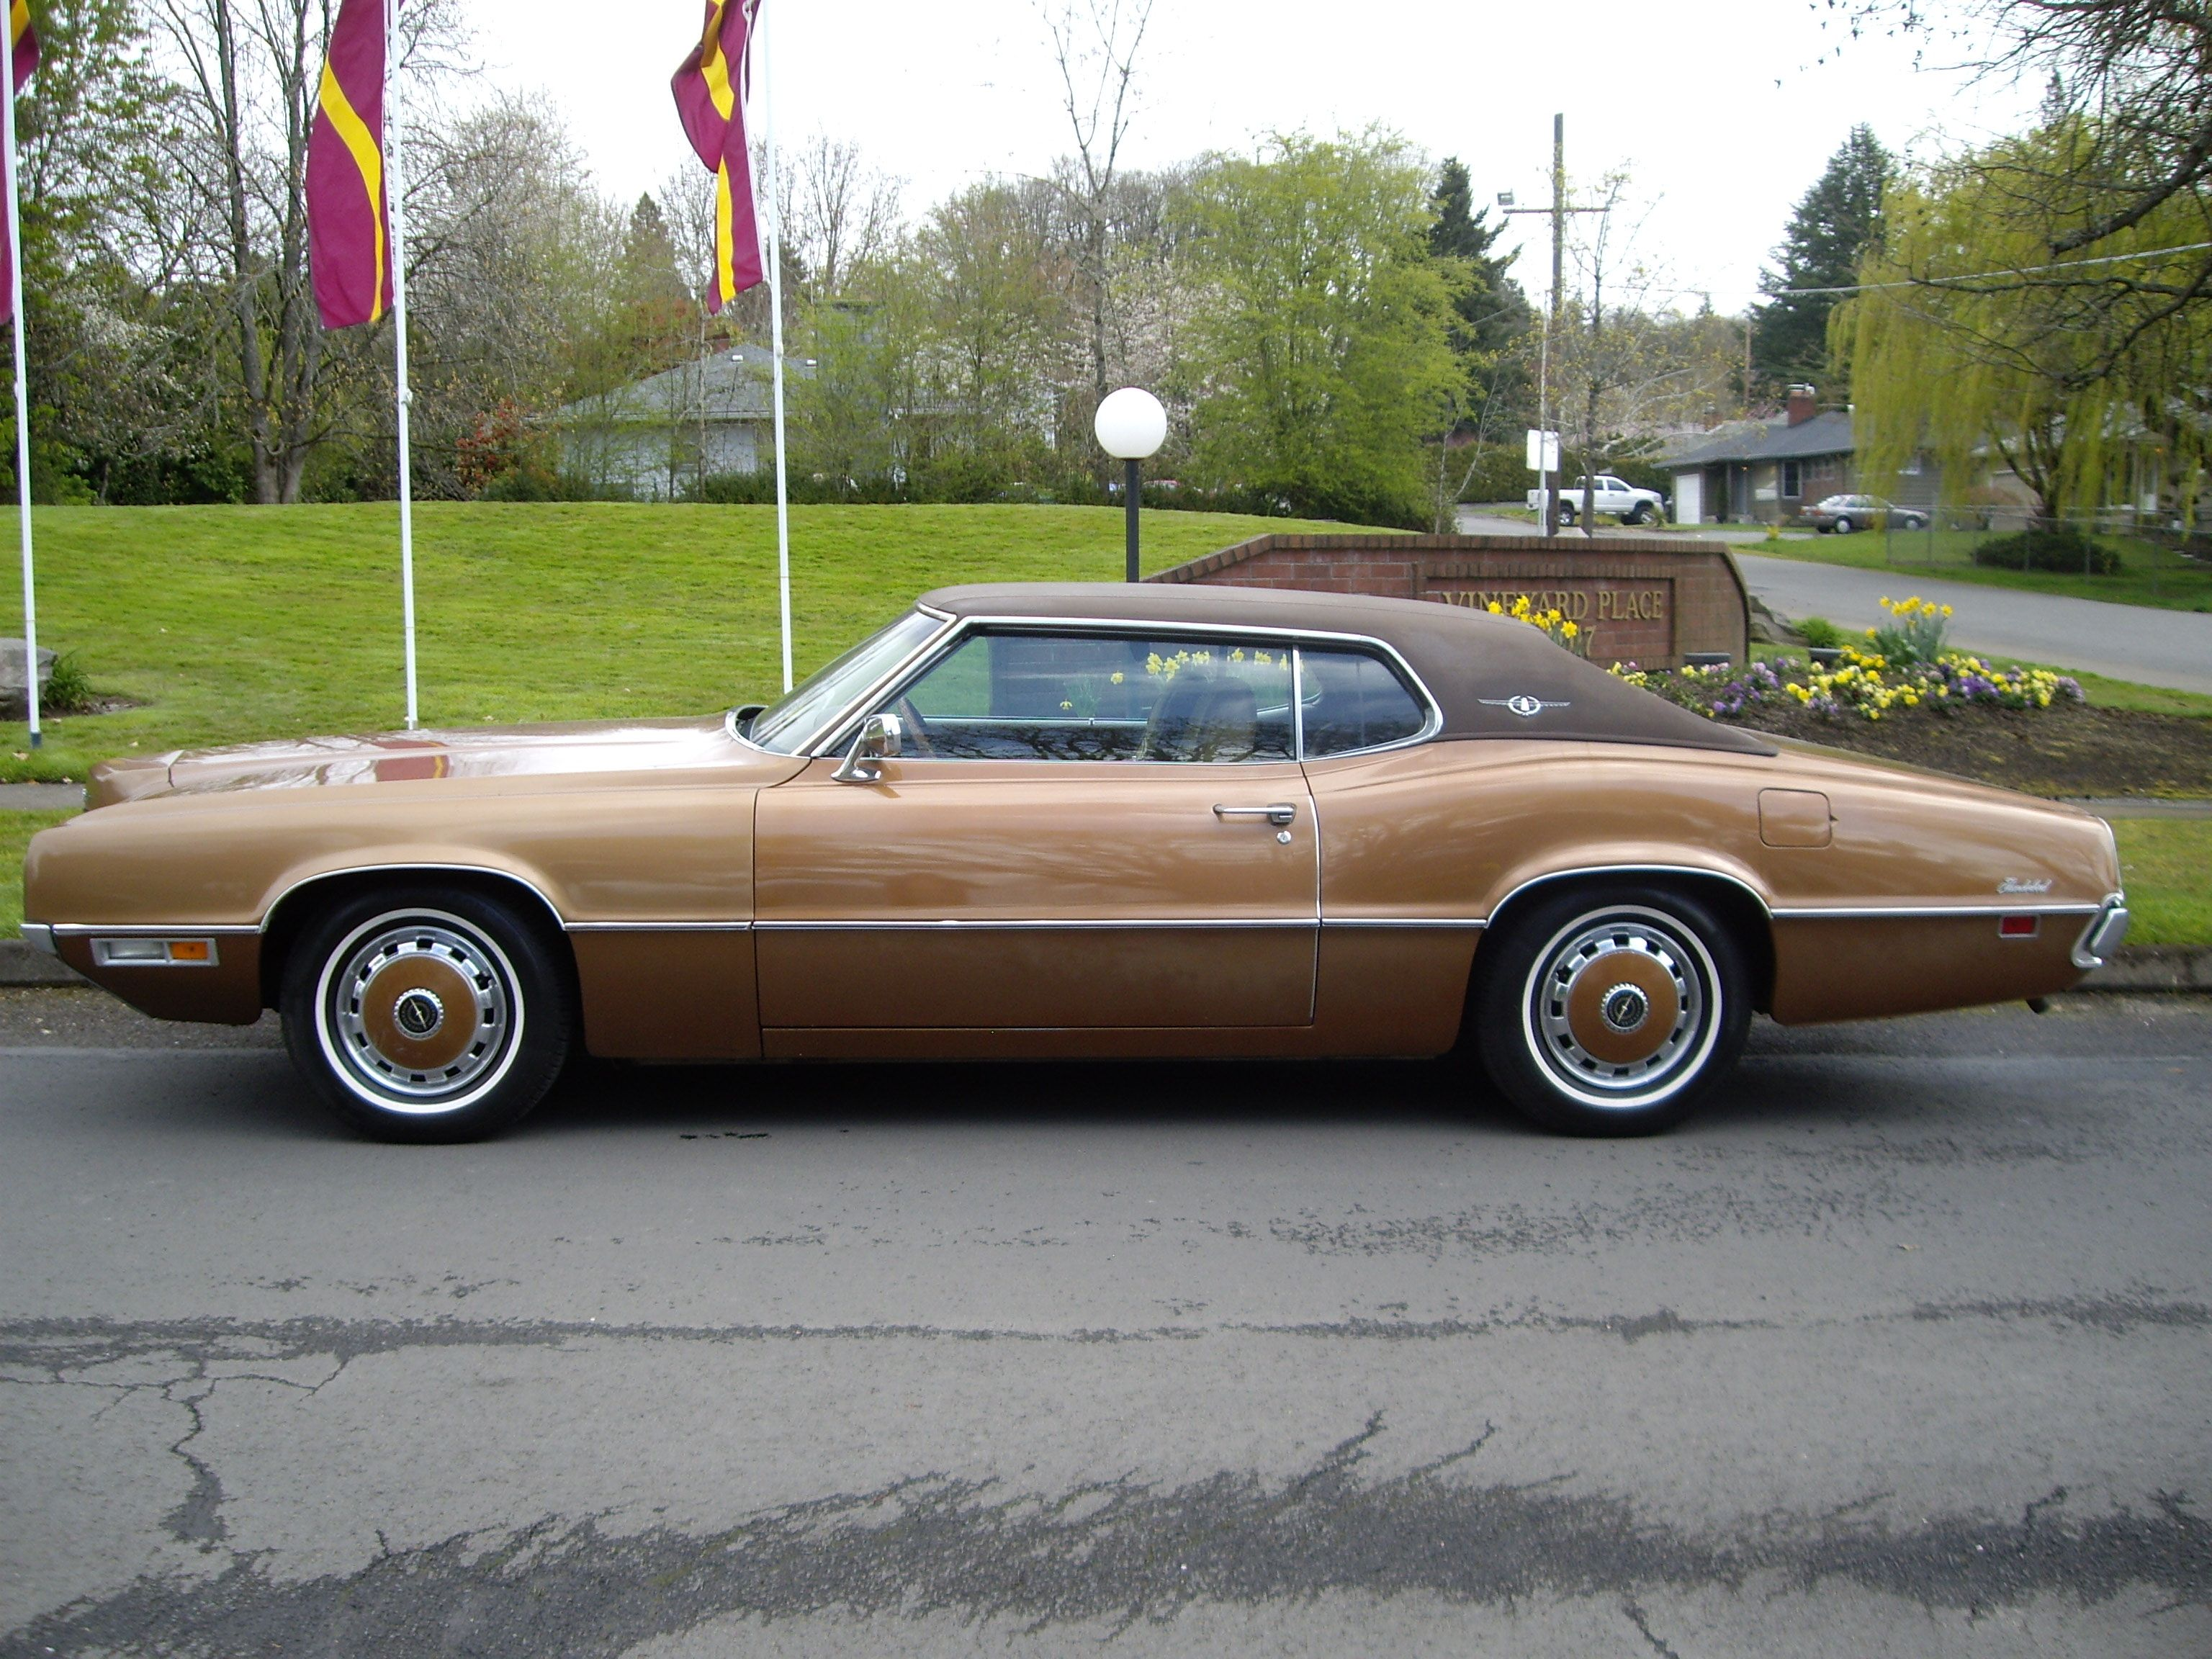 1970 ford thunderbird luxury cars of my generation pinterest ford thunderbird ford and cars. Black Bedroom Furniture Sets. Home Design Ideas